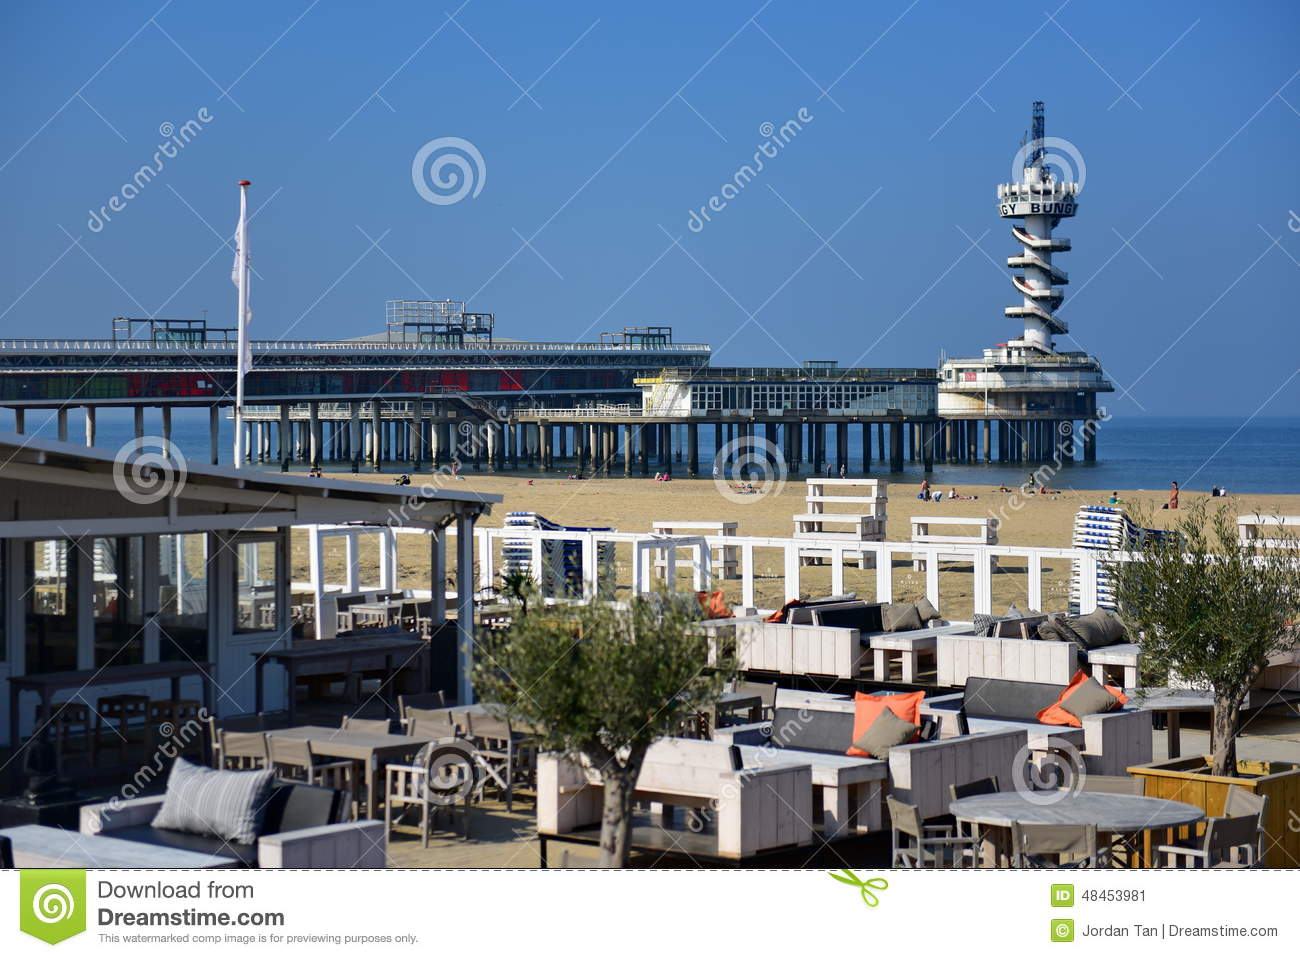 Scheveningen Beach Restaurants Restaurants And Pier Along The Sandy Beach Of Scheveningen